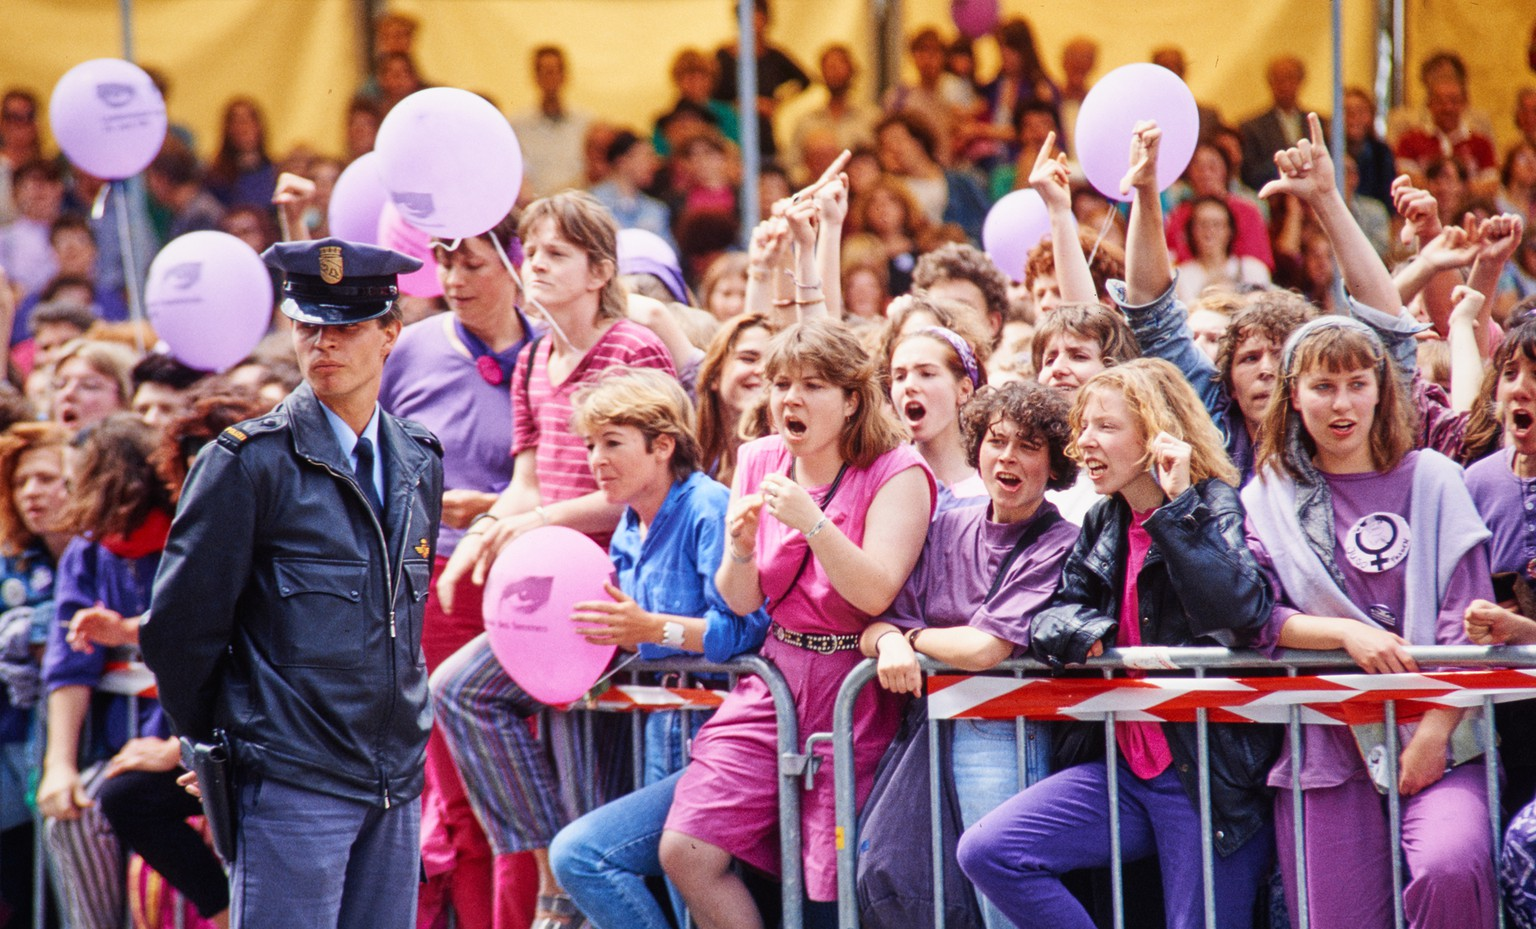 Streikende Frauen am nationalen Frauenstreiktag am 14. Juni 1991 in Bern.